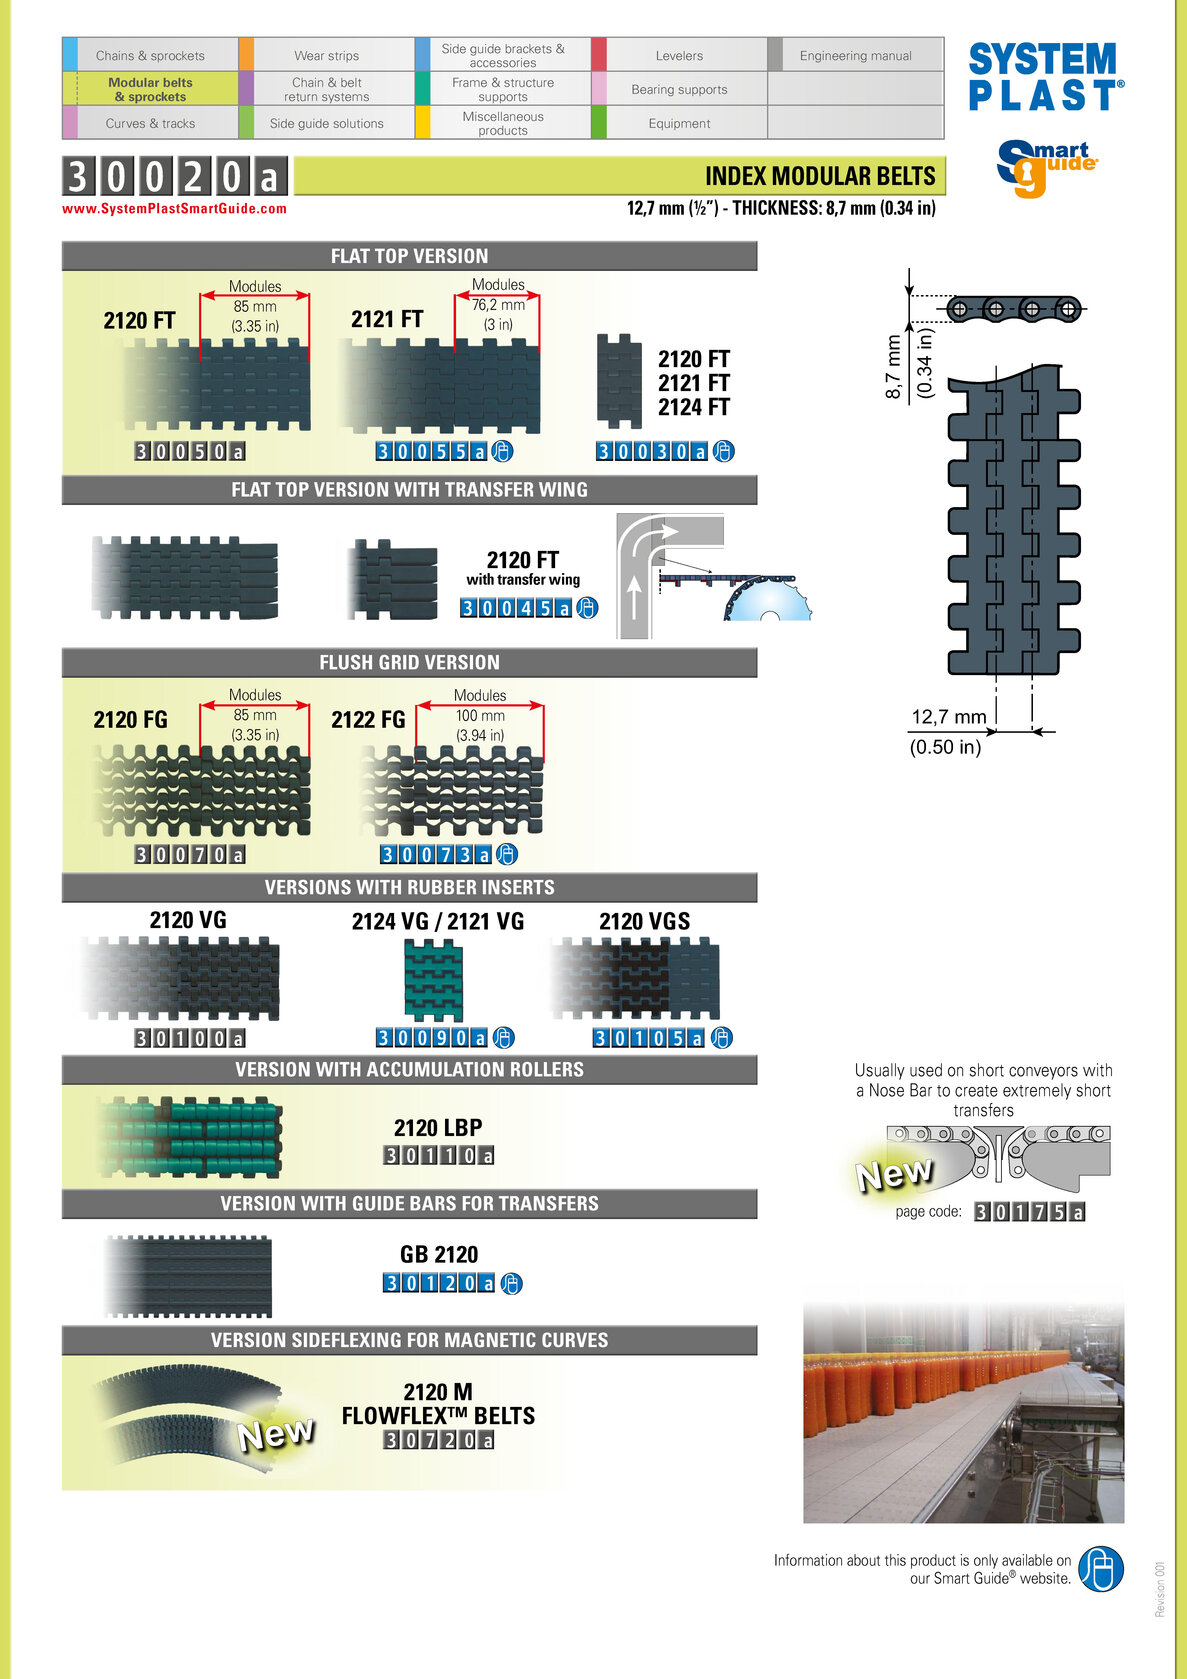 Smart Guide Page 30020A